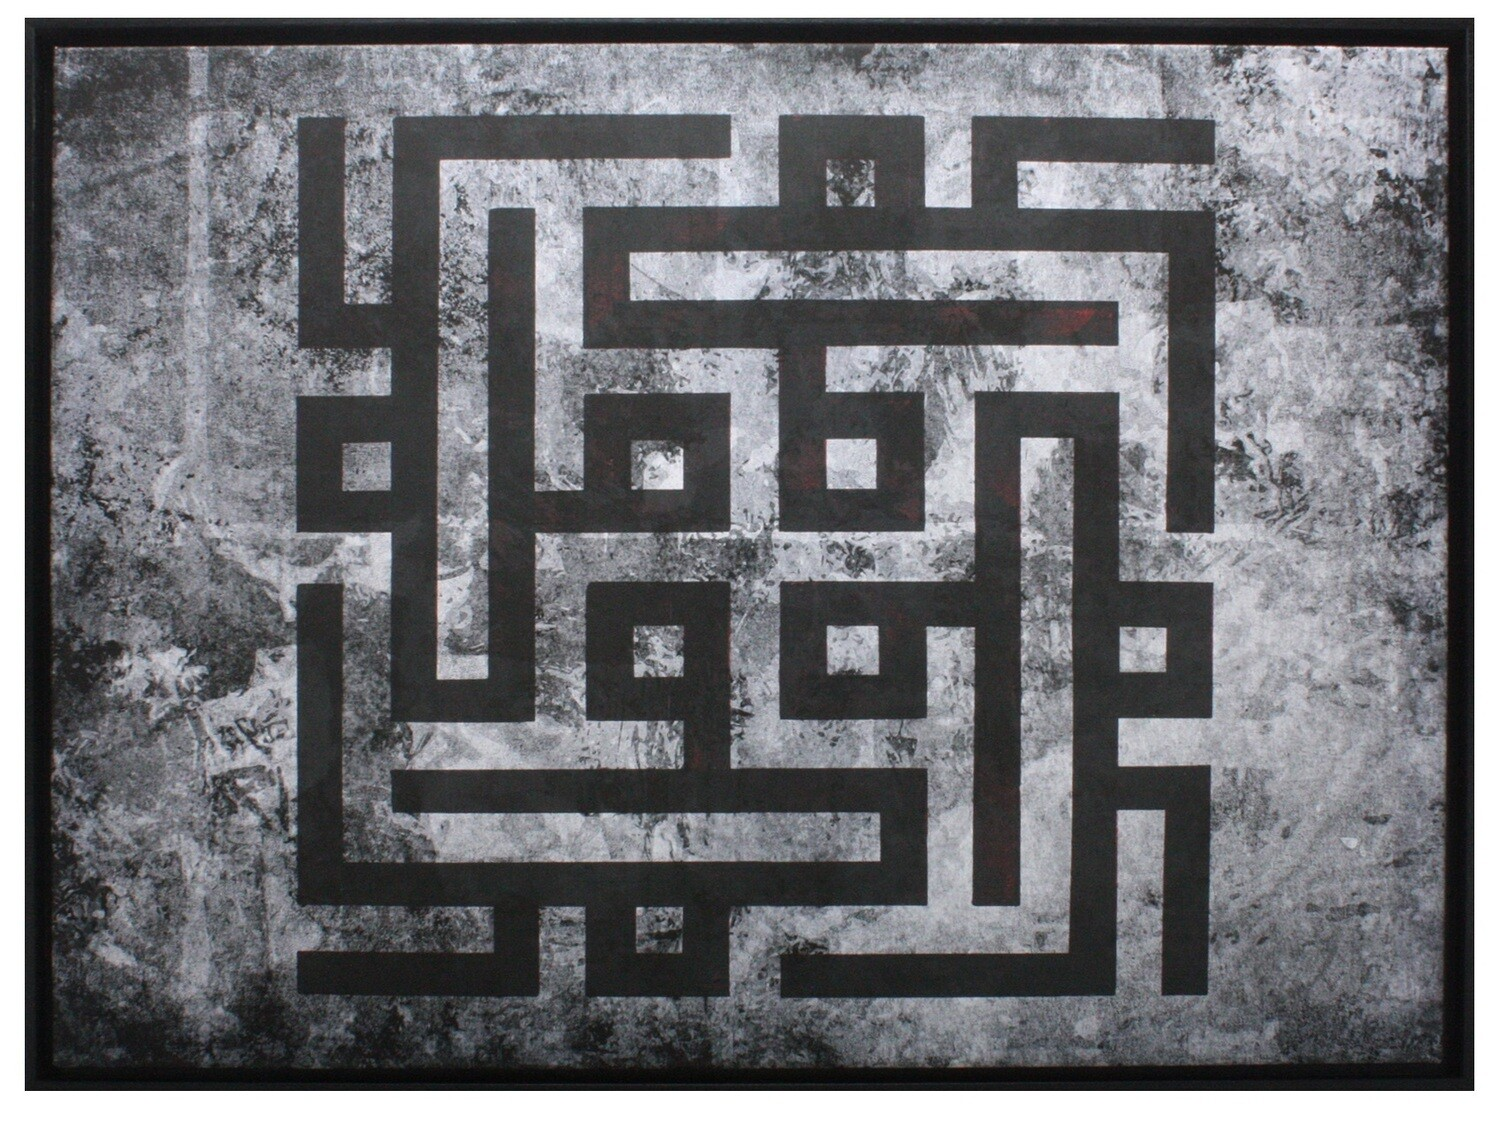 Mohammed Kufic Rotated Abstract Grey/Black Design Original Giclée Canvas